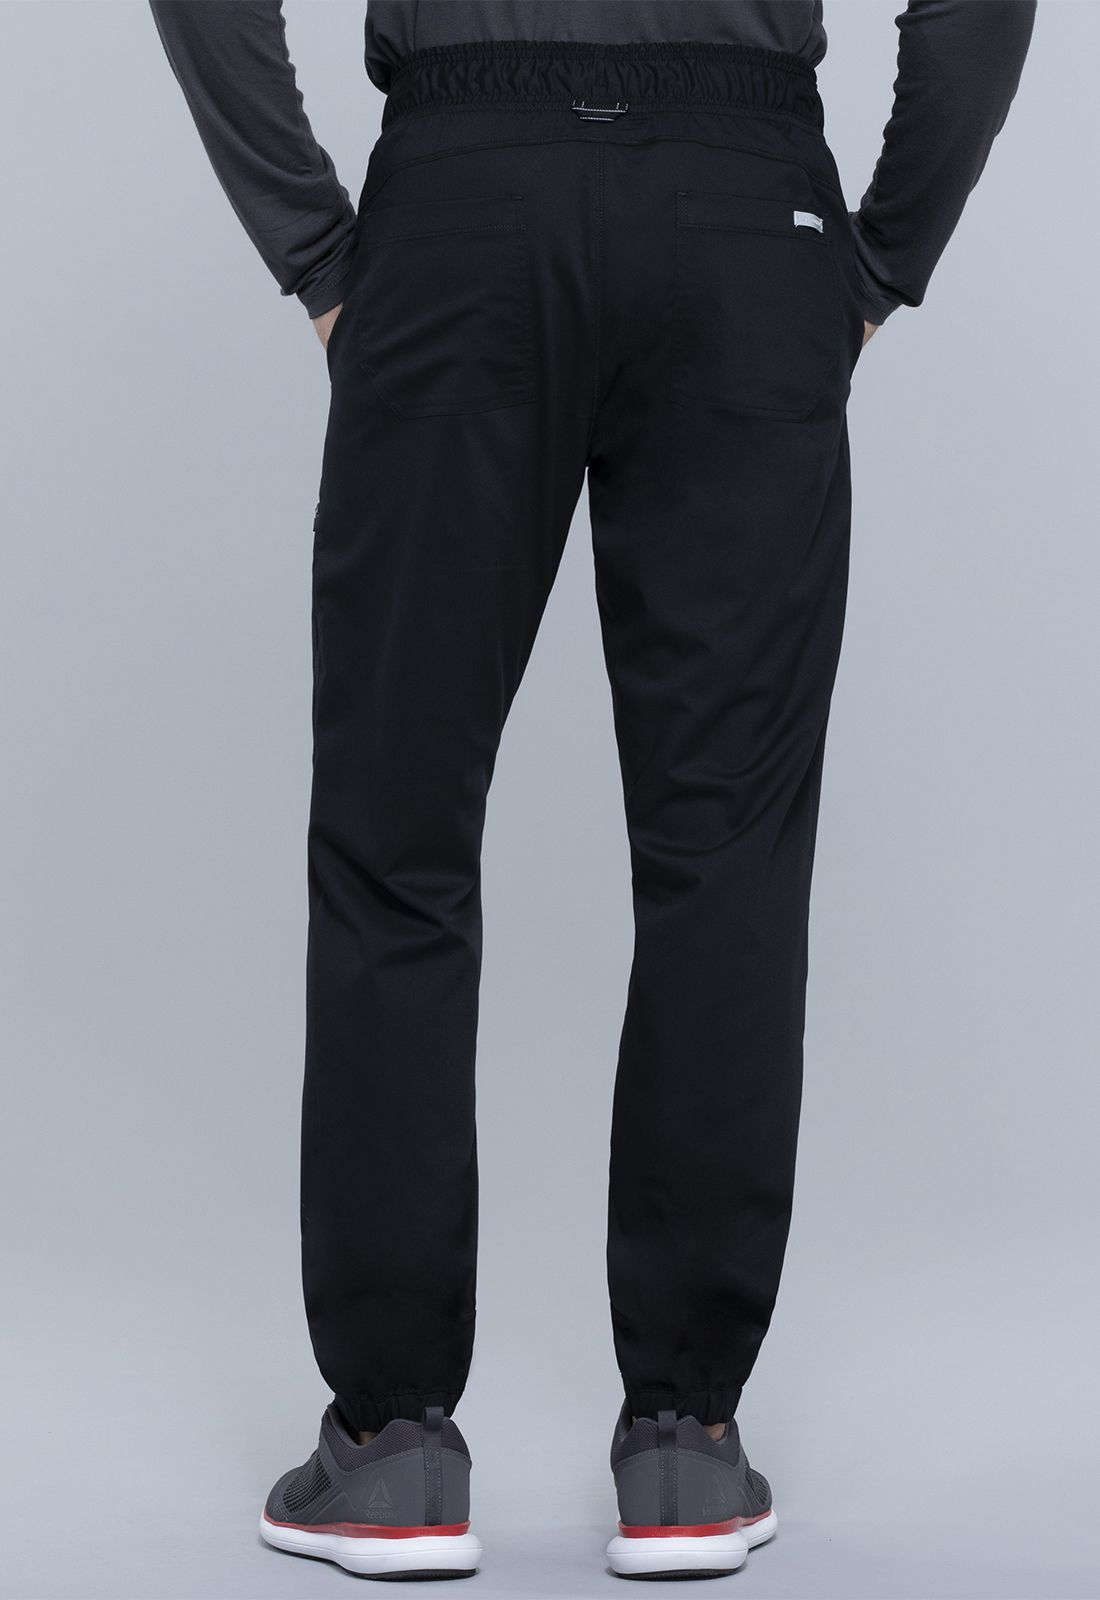 https://medcloth.by/images/stories/virtuemart/product/ww012-black-4.jpg